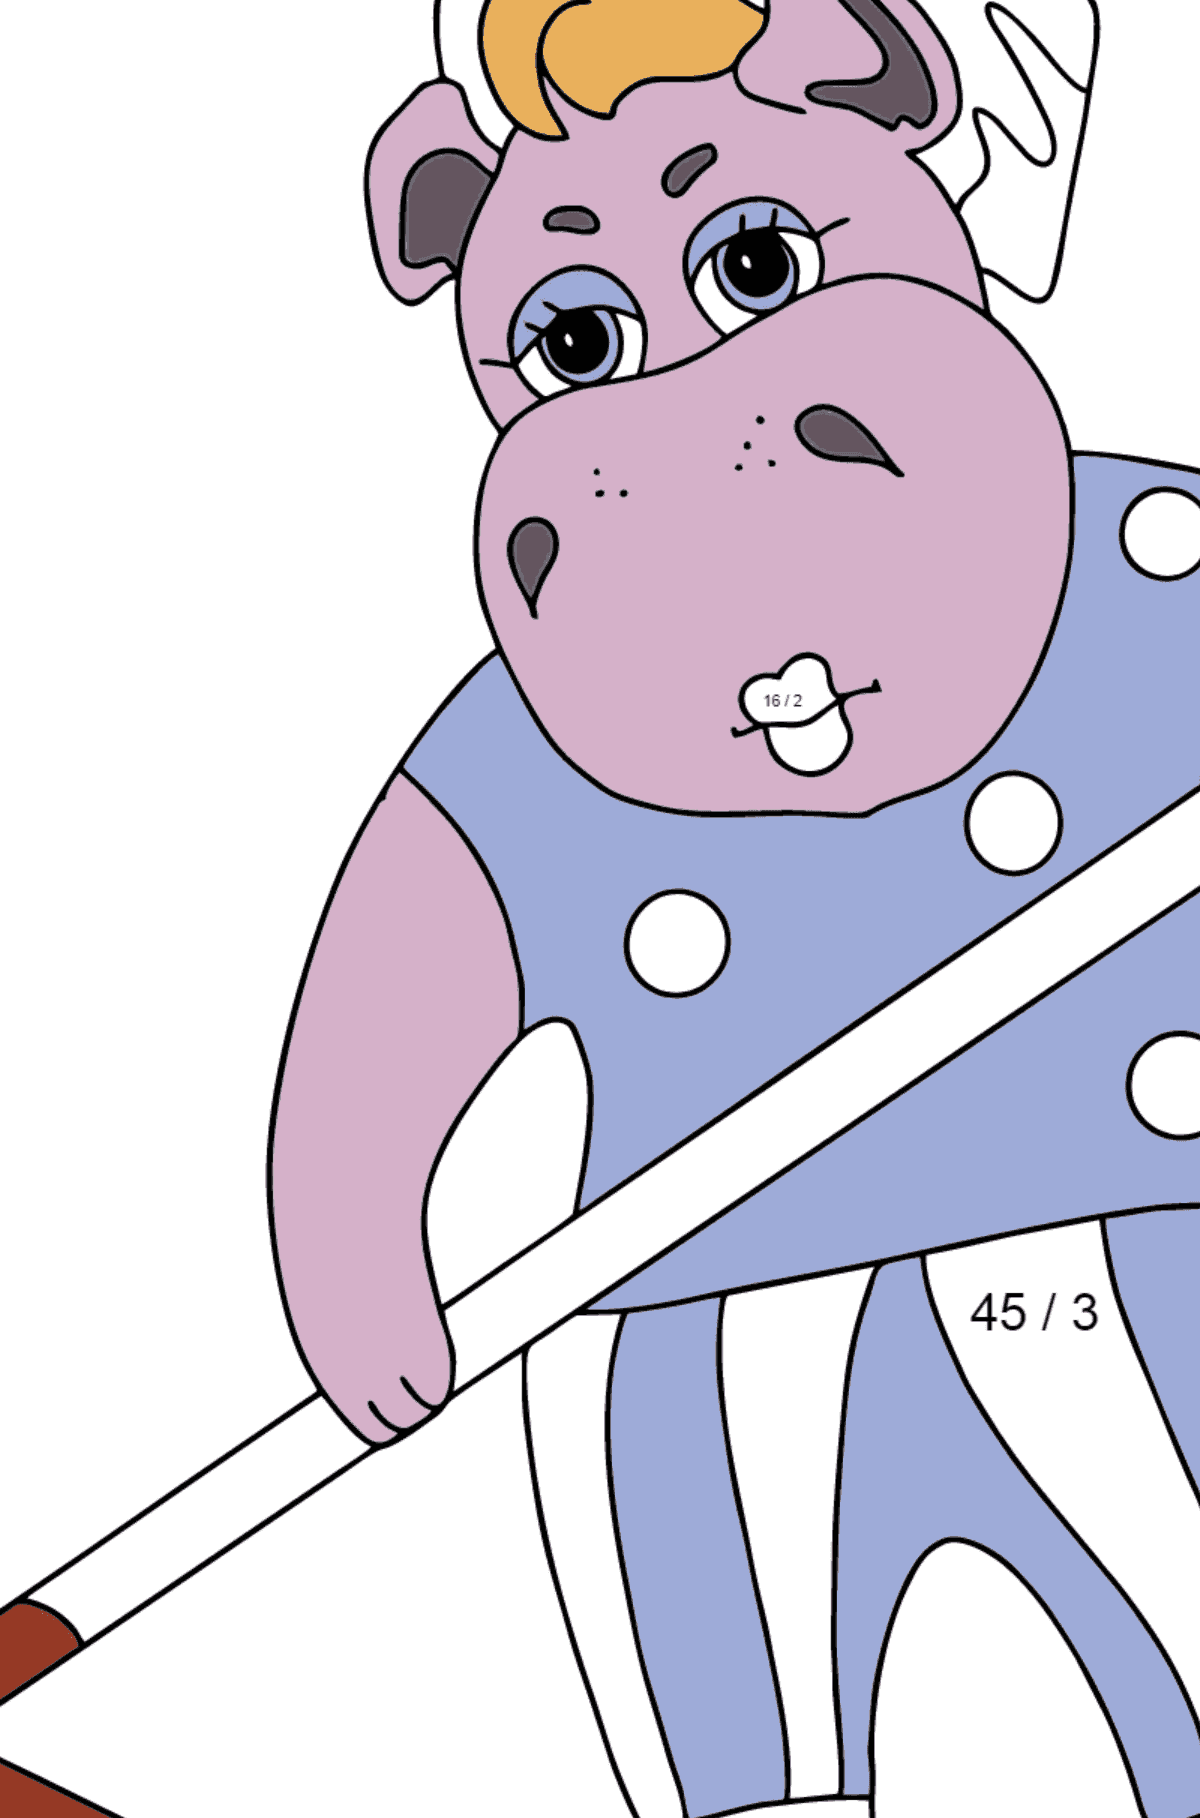 Coloring Page - A Hippo is Collecting Autumn Leaves for Kids  - Color by Number Division